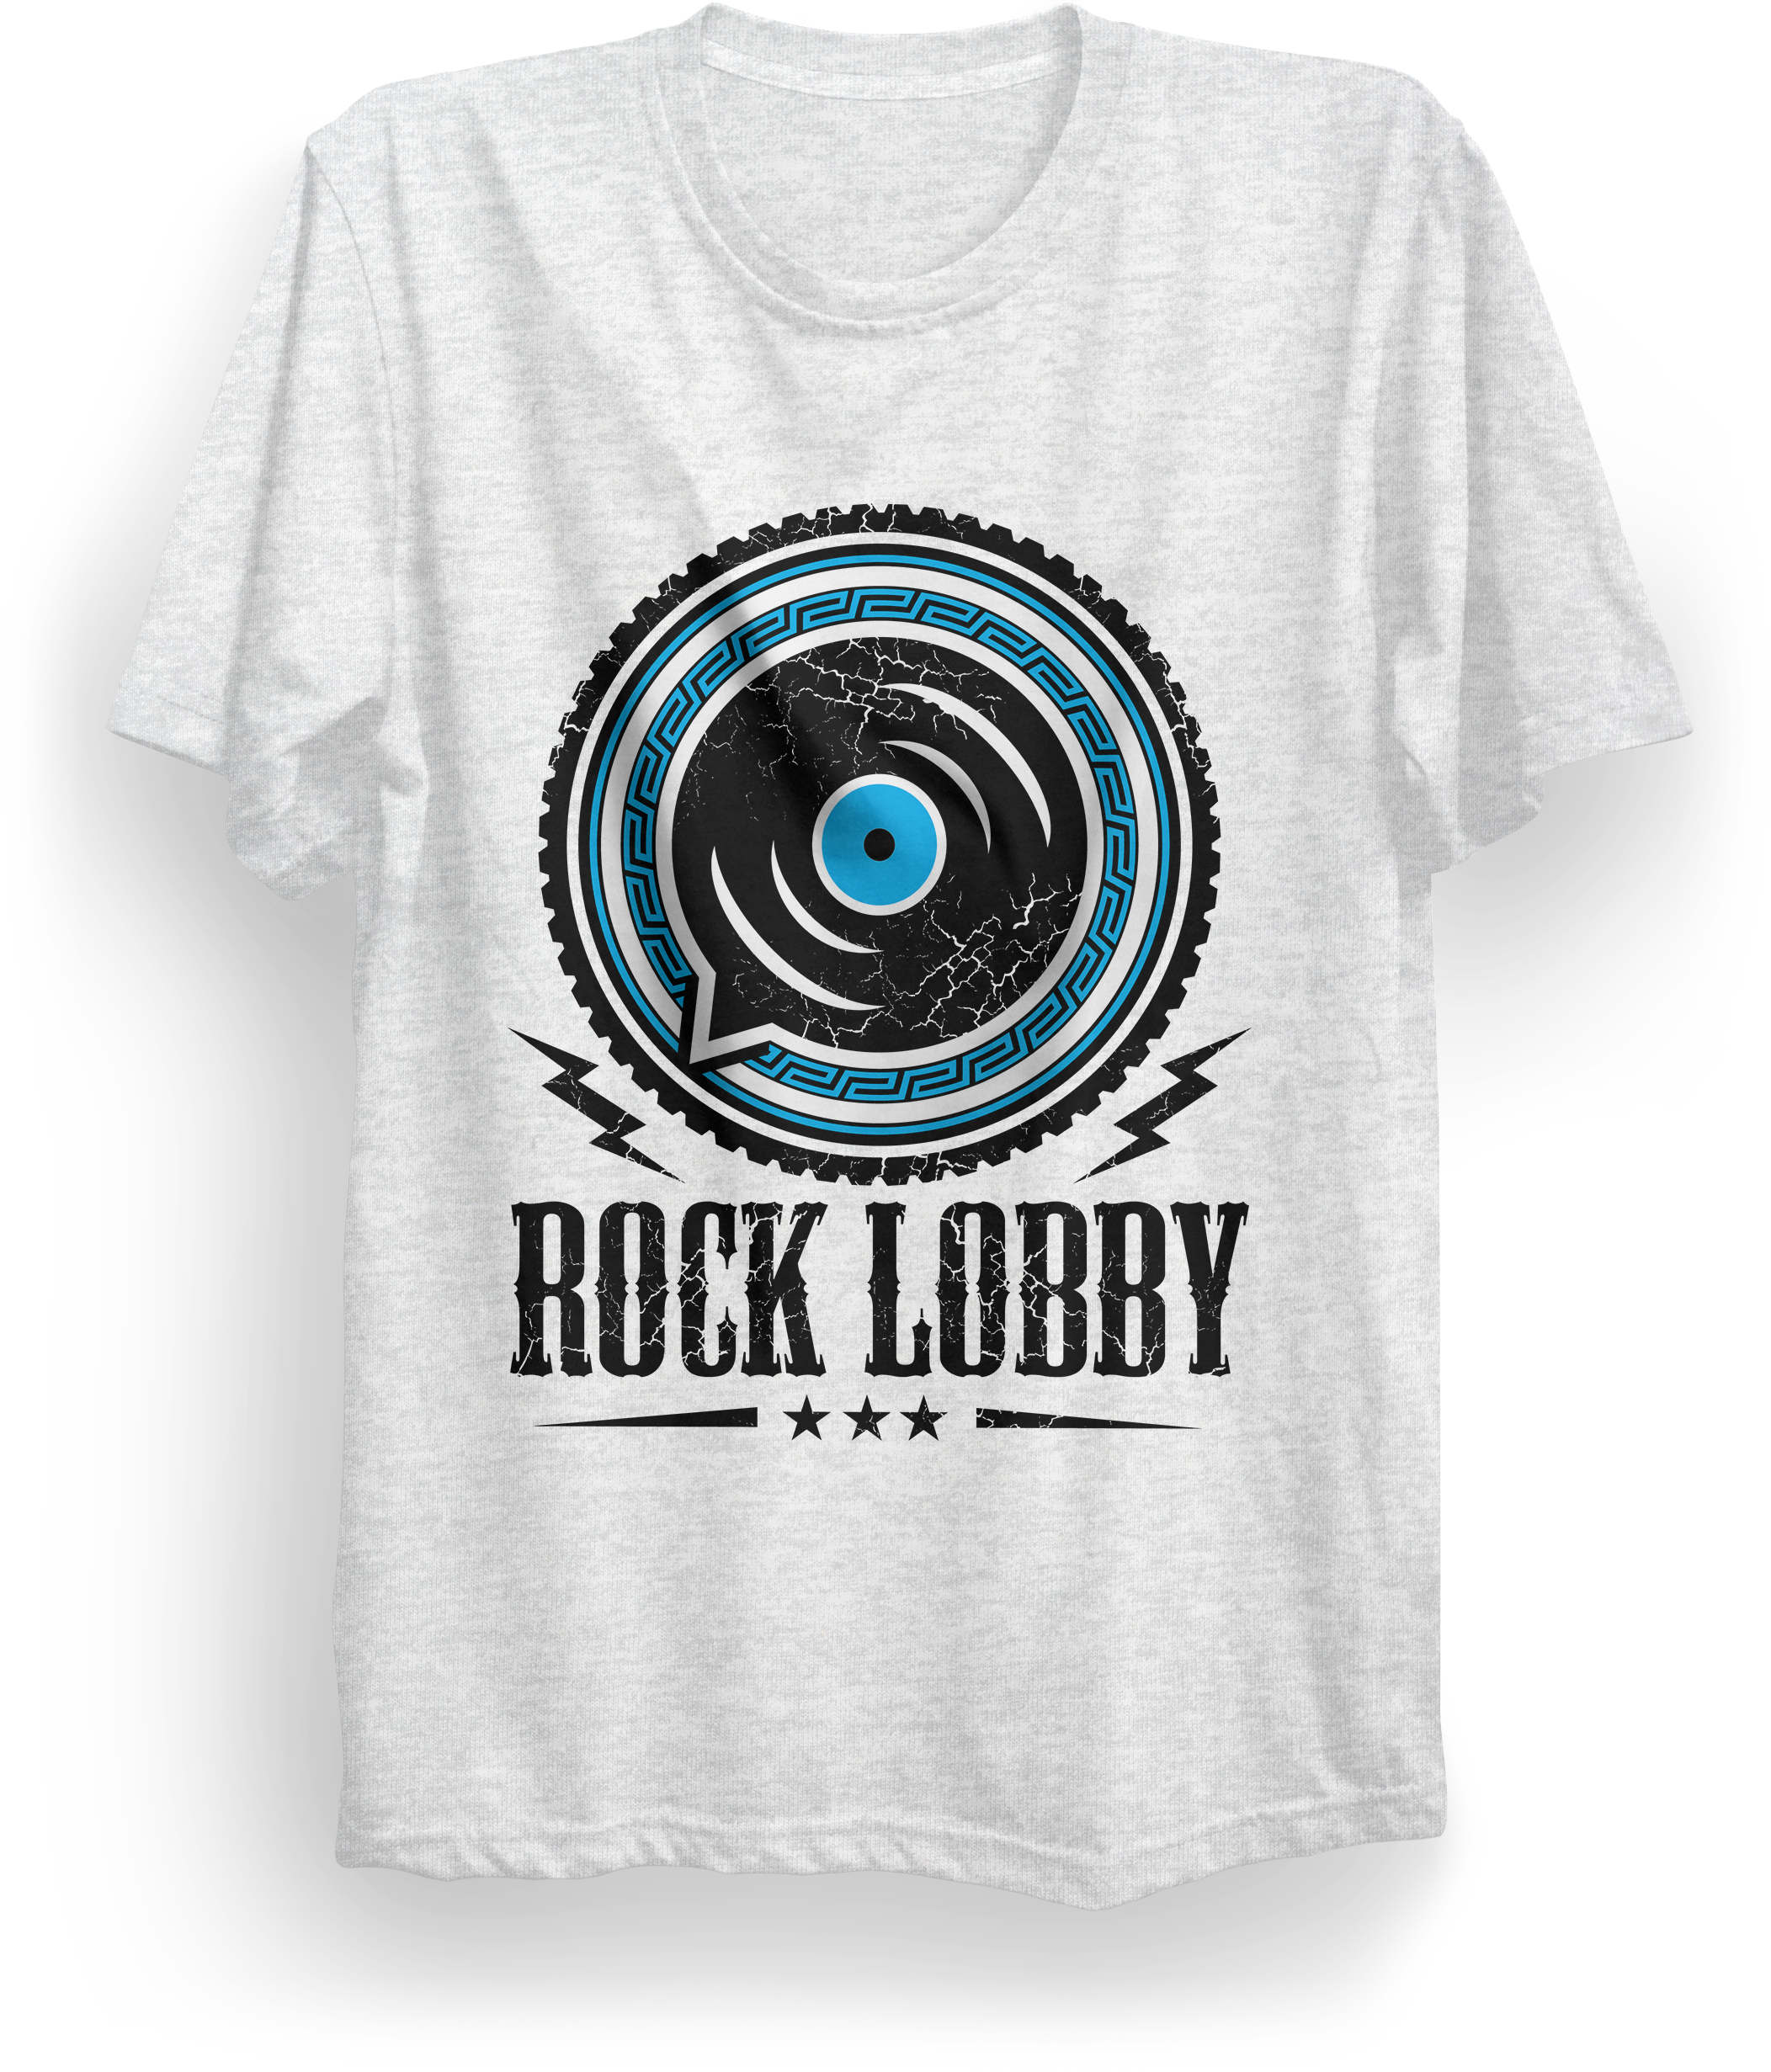 Find A Professional T-shirt Designer To